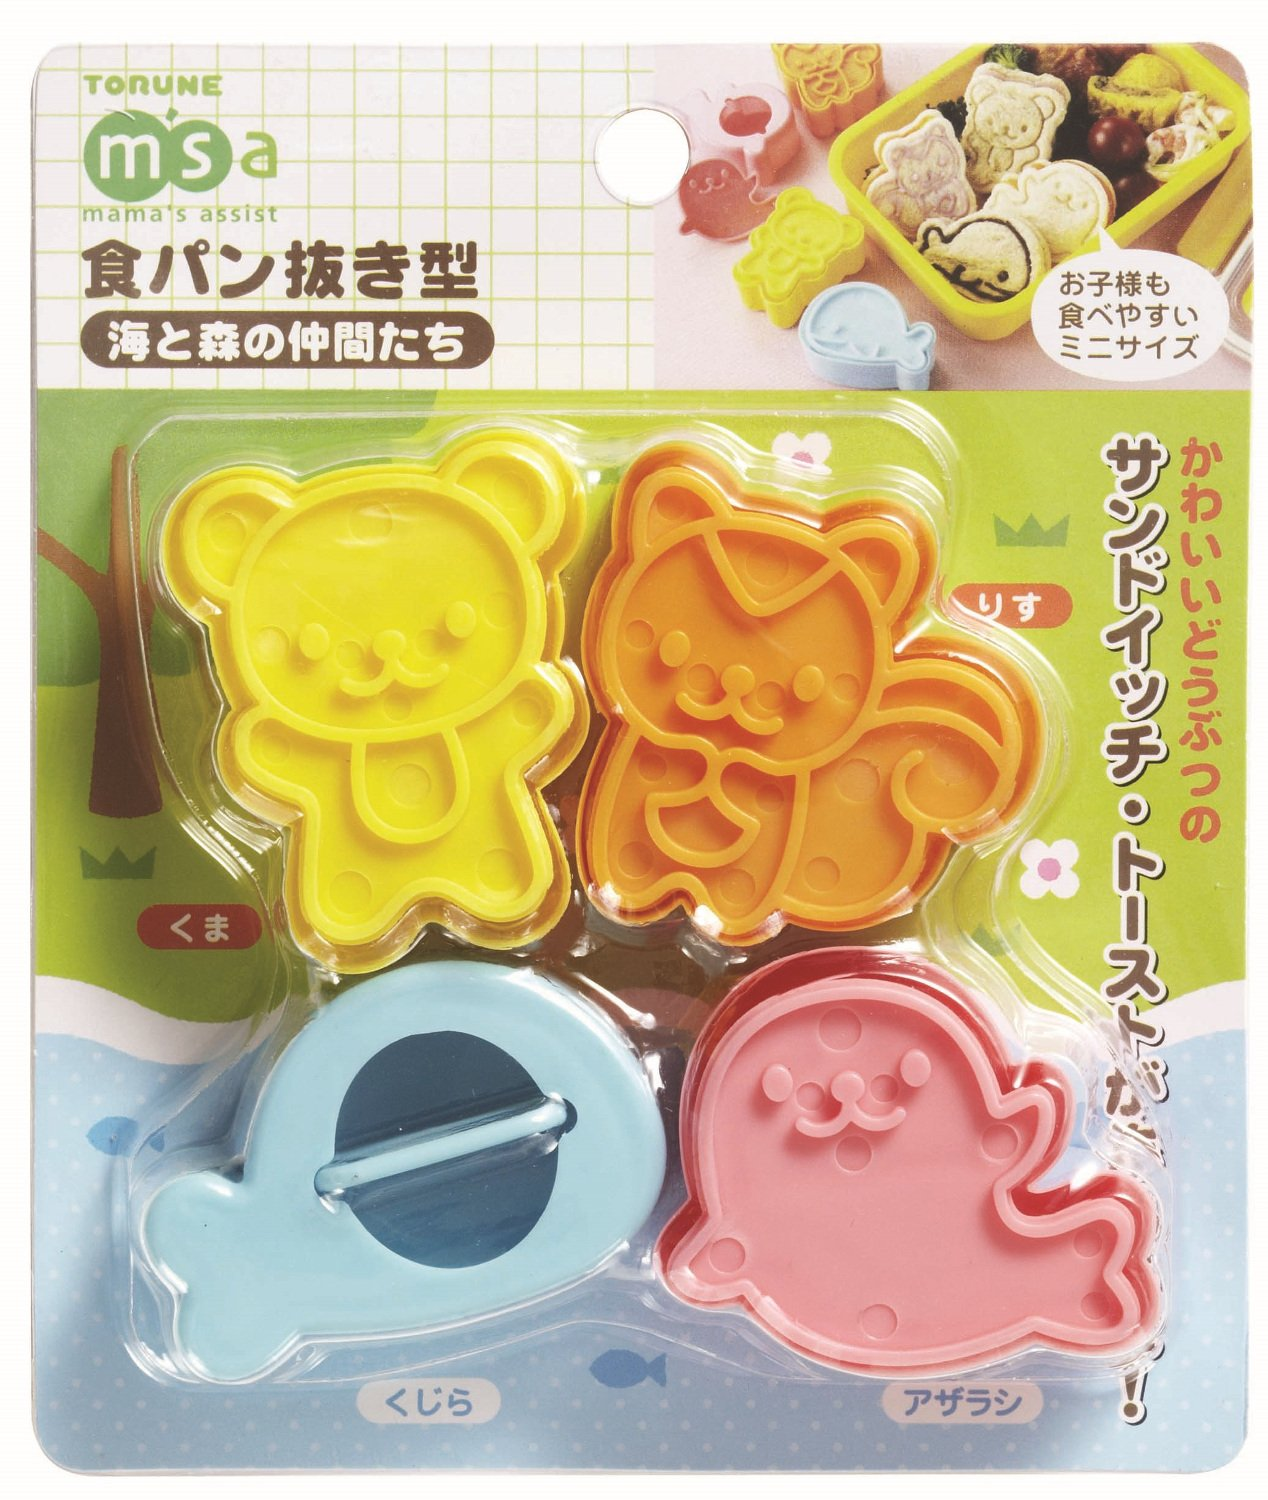 Torune Mama's Assist Animal Friends Bento Lunch Sandwich Bread Mold Cutters and Stamps Set of 4 Animals (Bear Squall Whale Seal) Japan Import P-3087